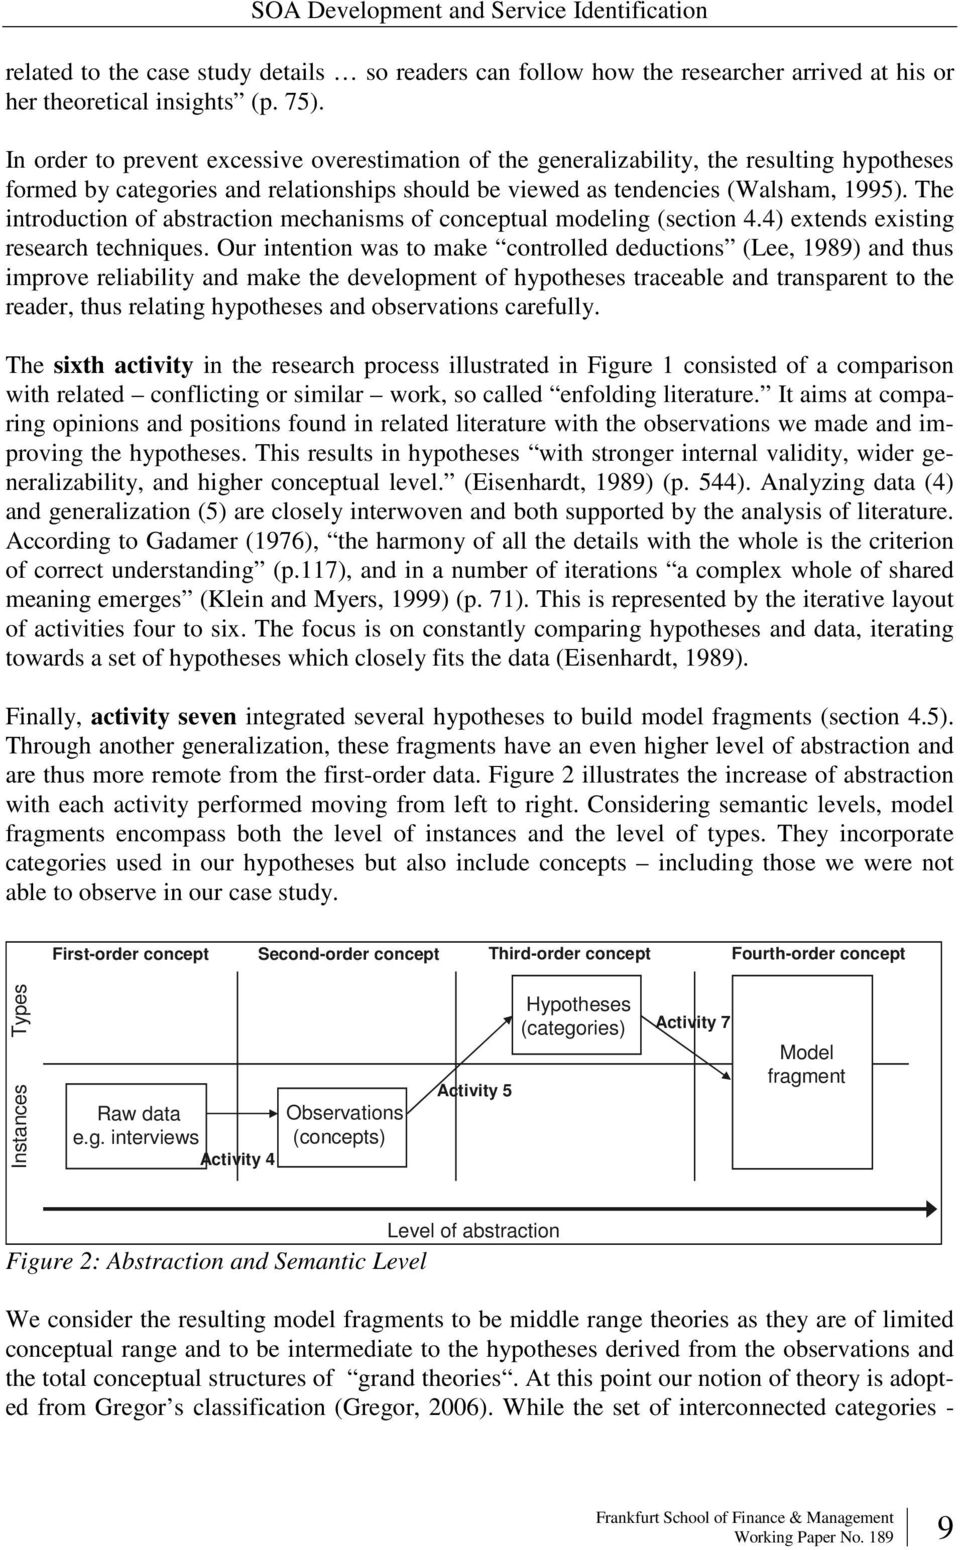 The introduction of abstraction mechanisms of conceptual modeling (section 4.4) extends existing research techniques.